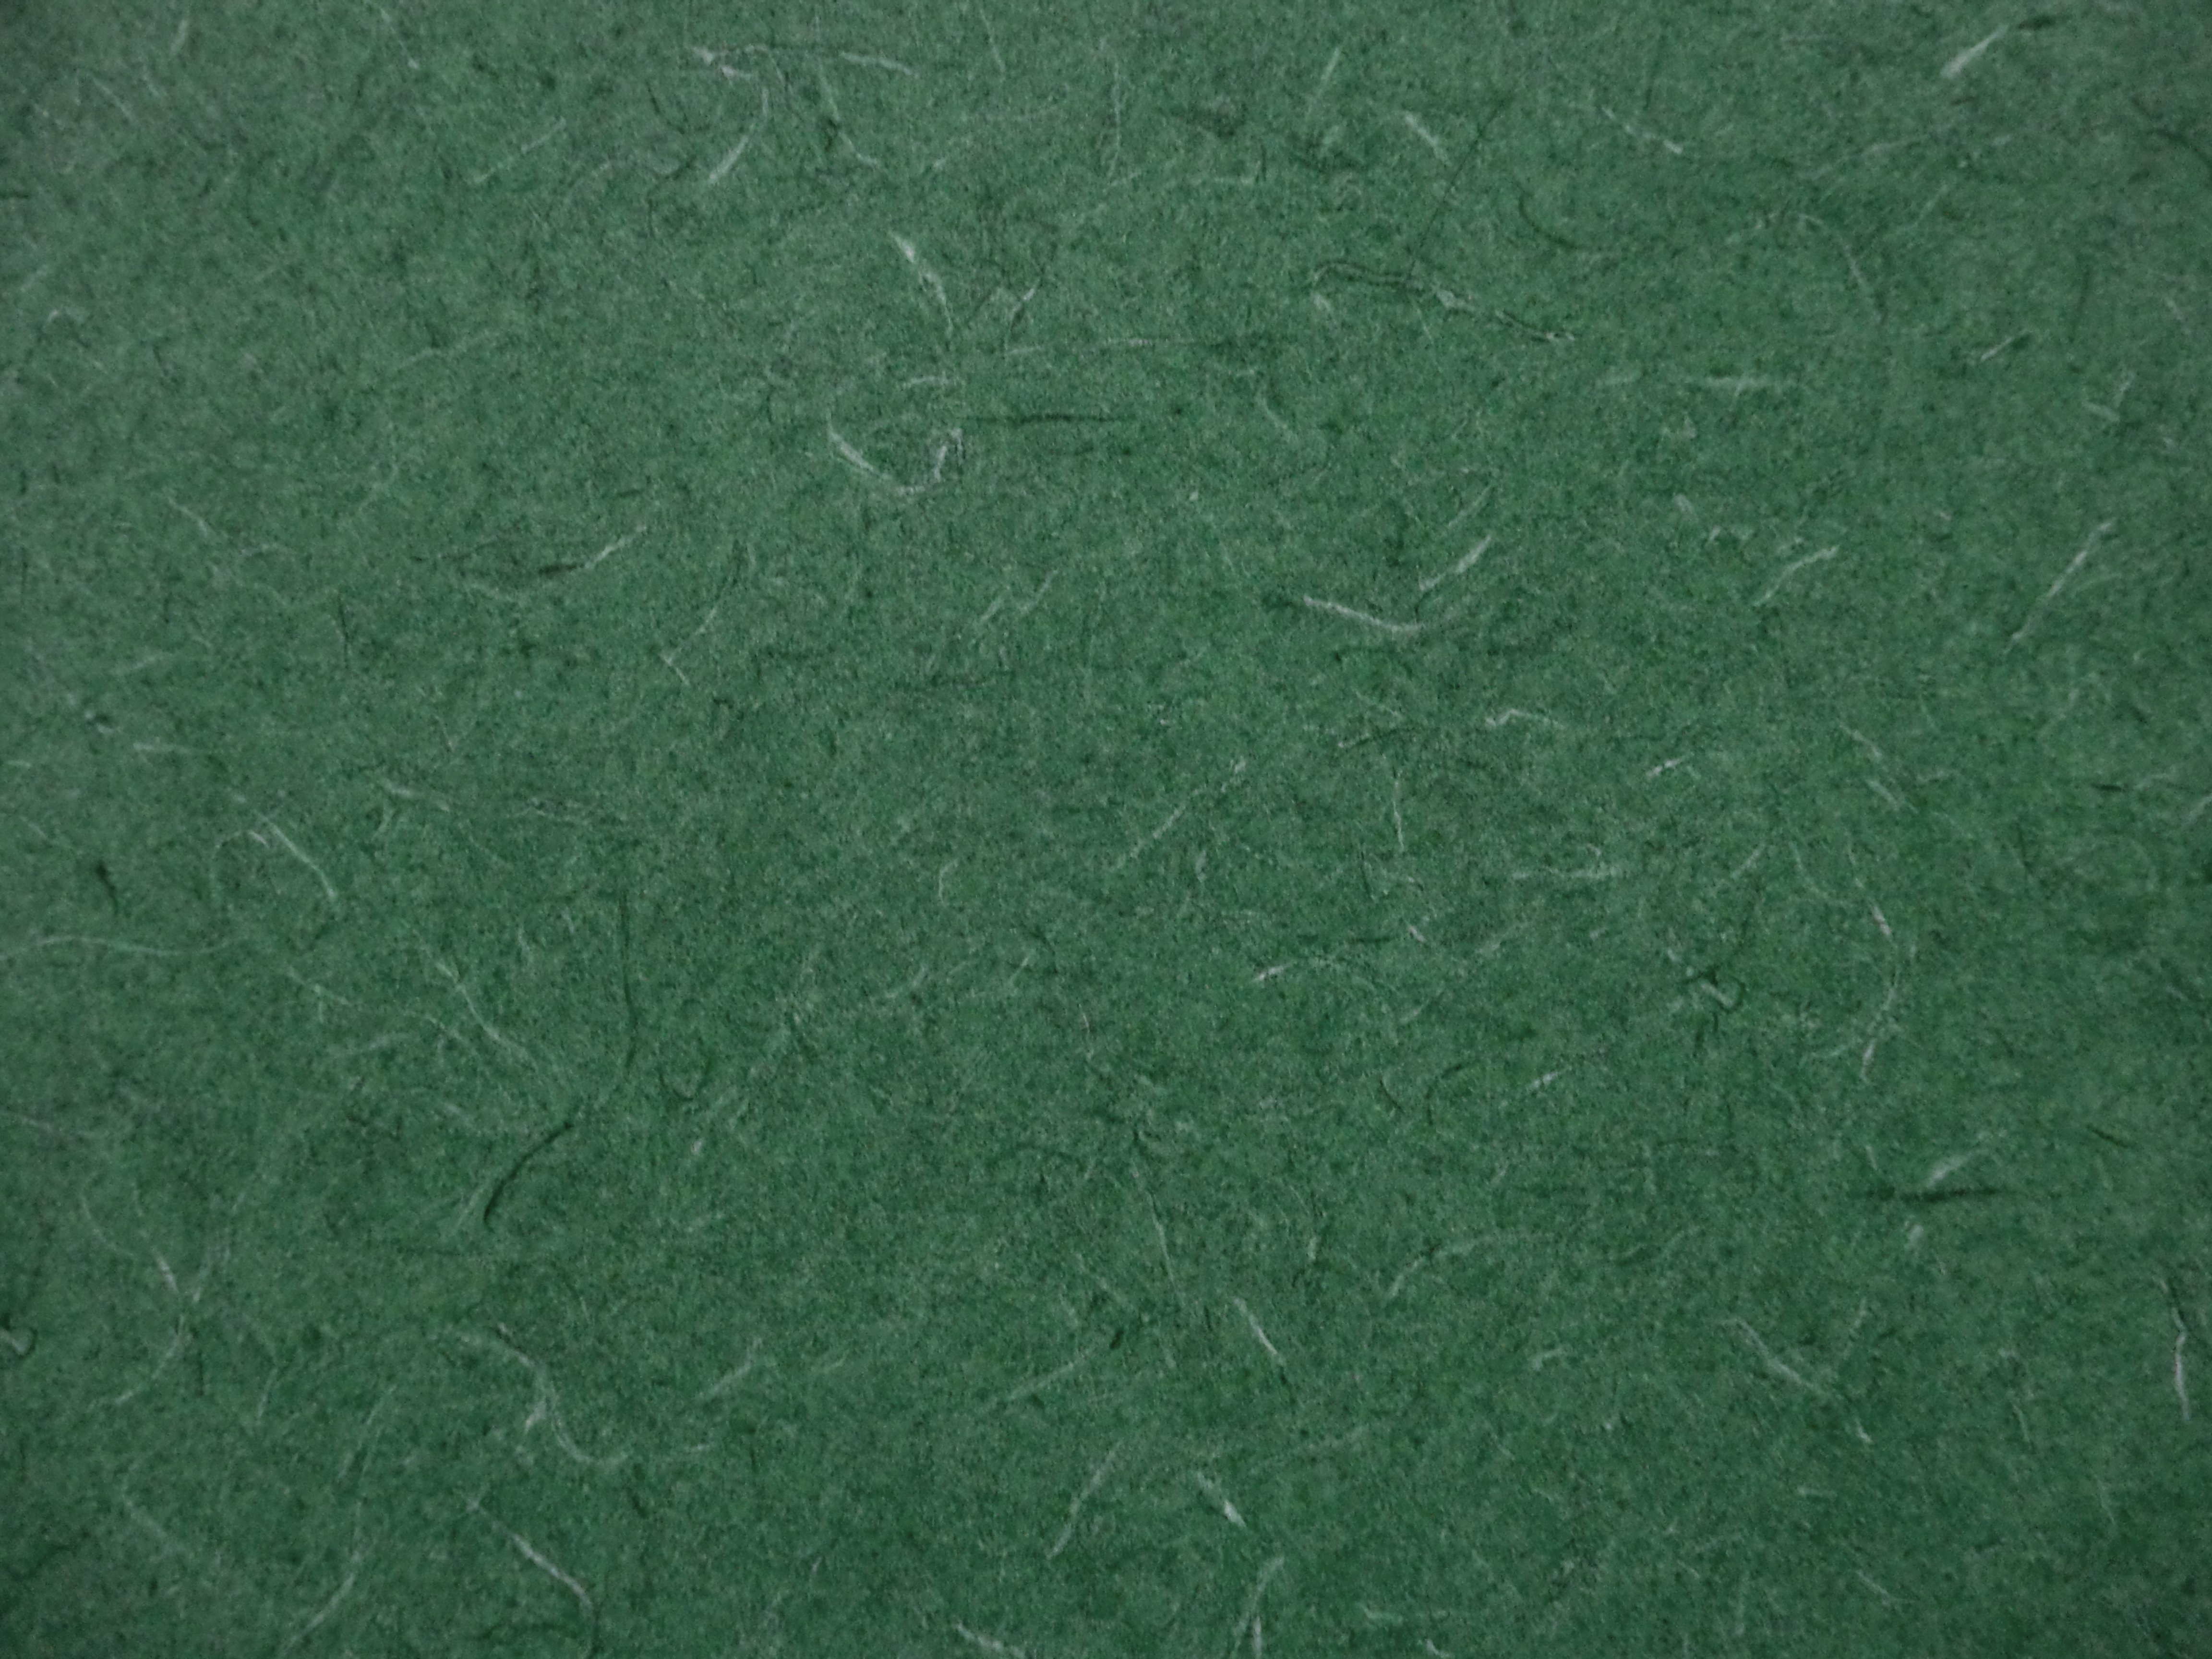 Green Abstract Pattern Laminate Countertop Texture Picture